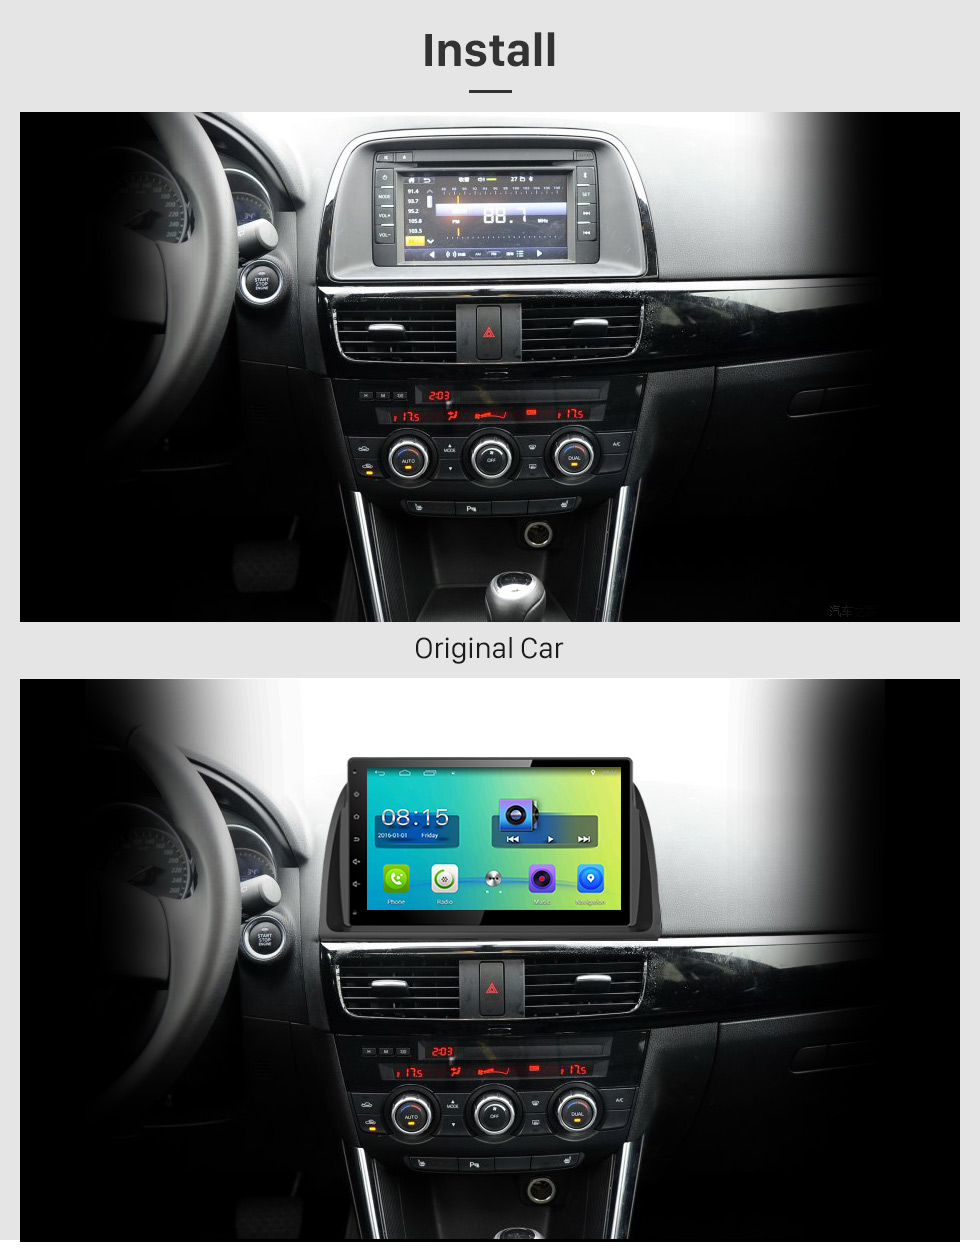 Install 10.1 inch 2016 Peugeot 308 Android 6.0 Radio GPS Navigation system Support Canbus Bluetooth Music USB 1080P Video 3G WIFI OBD2 Mirror Link Rearview